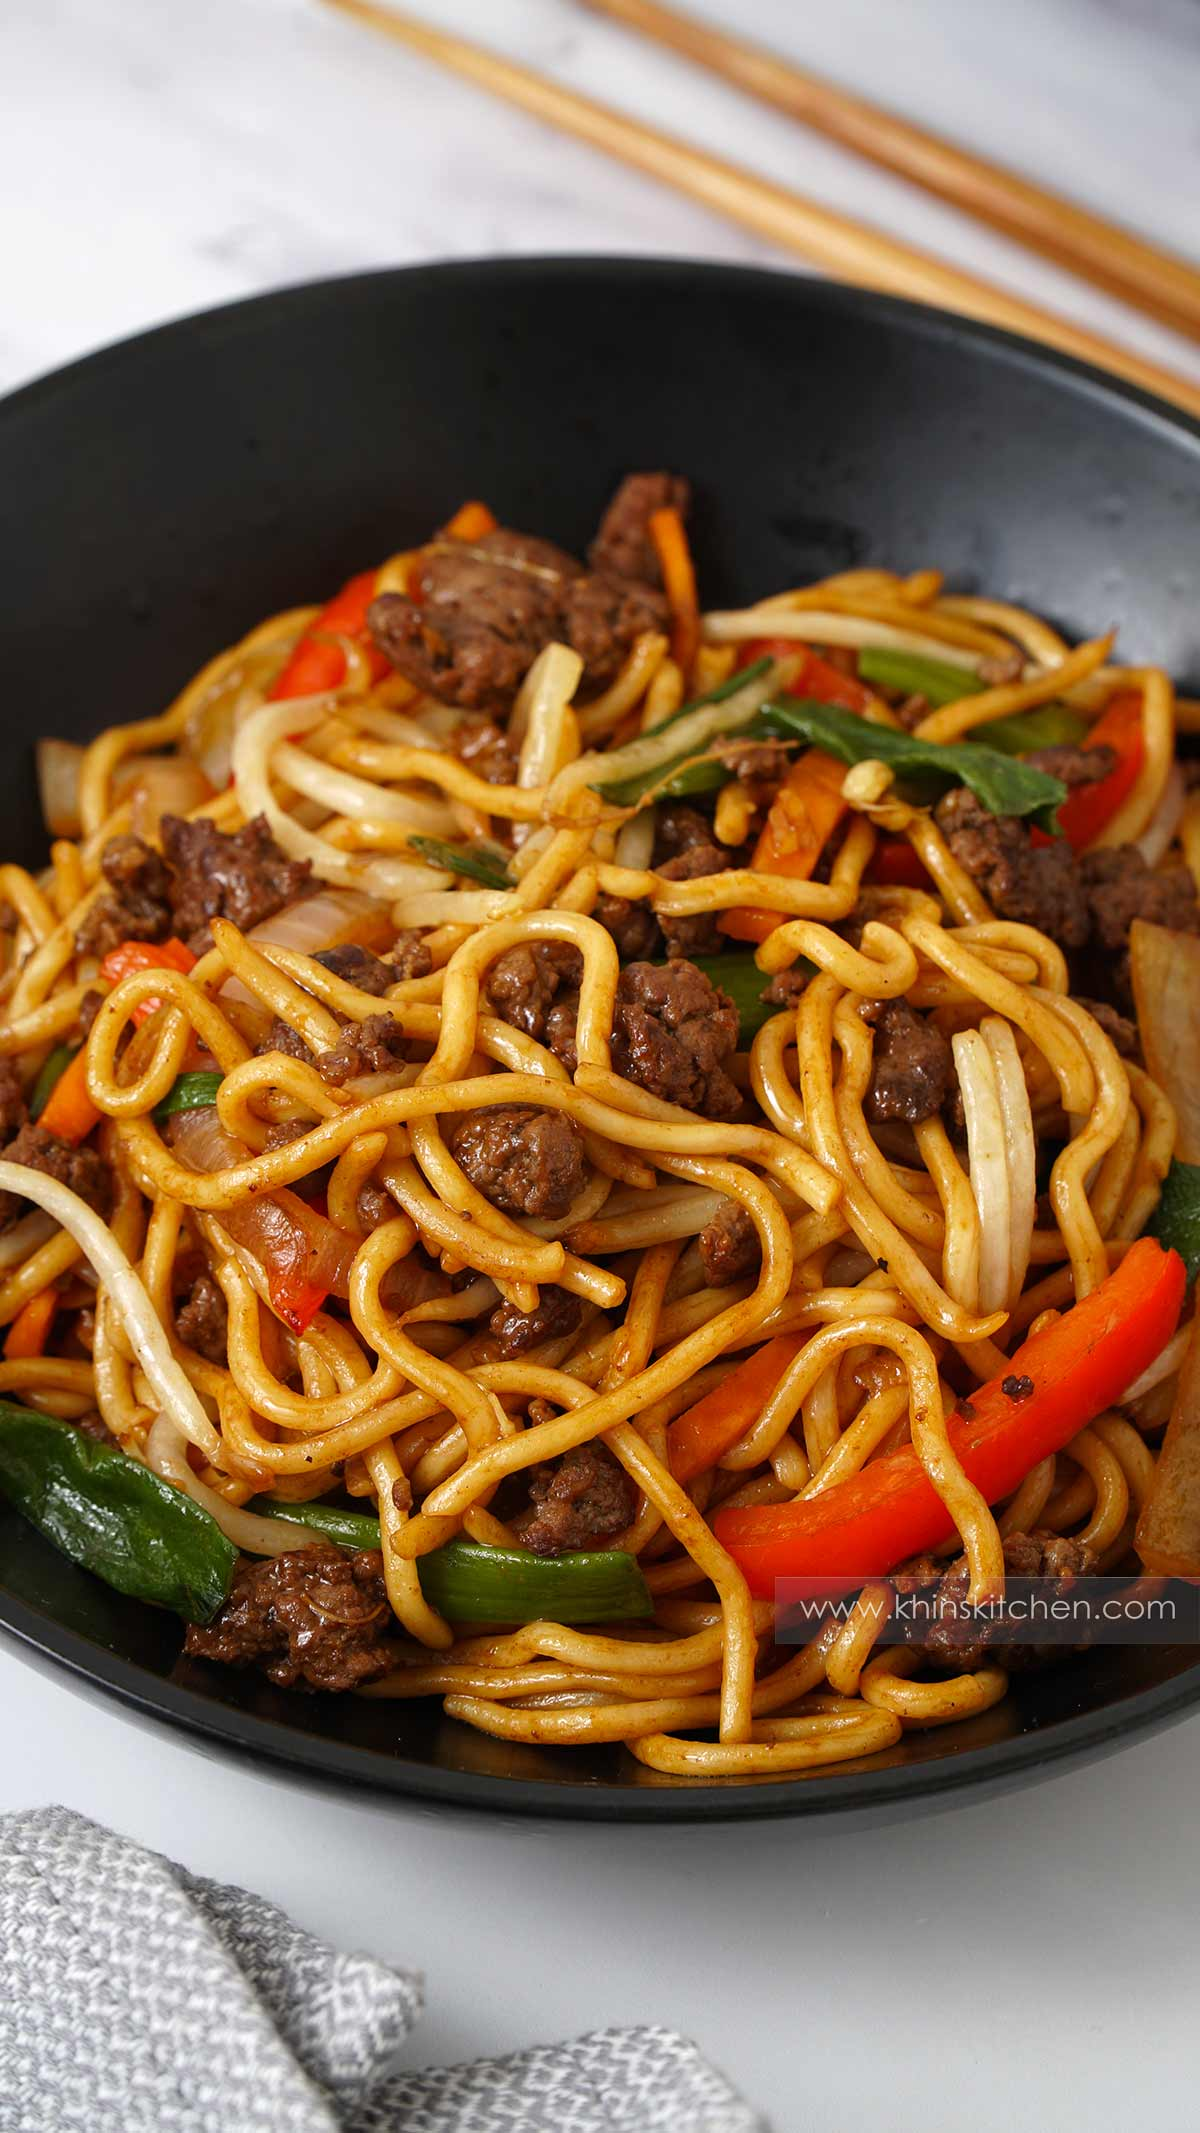 A black bowl containing stir fry noodles, sliced vegetables, ground beef.